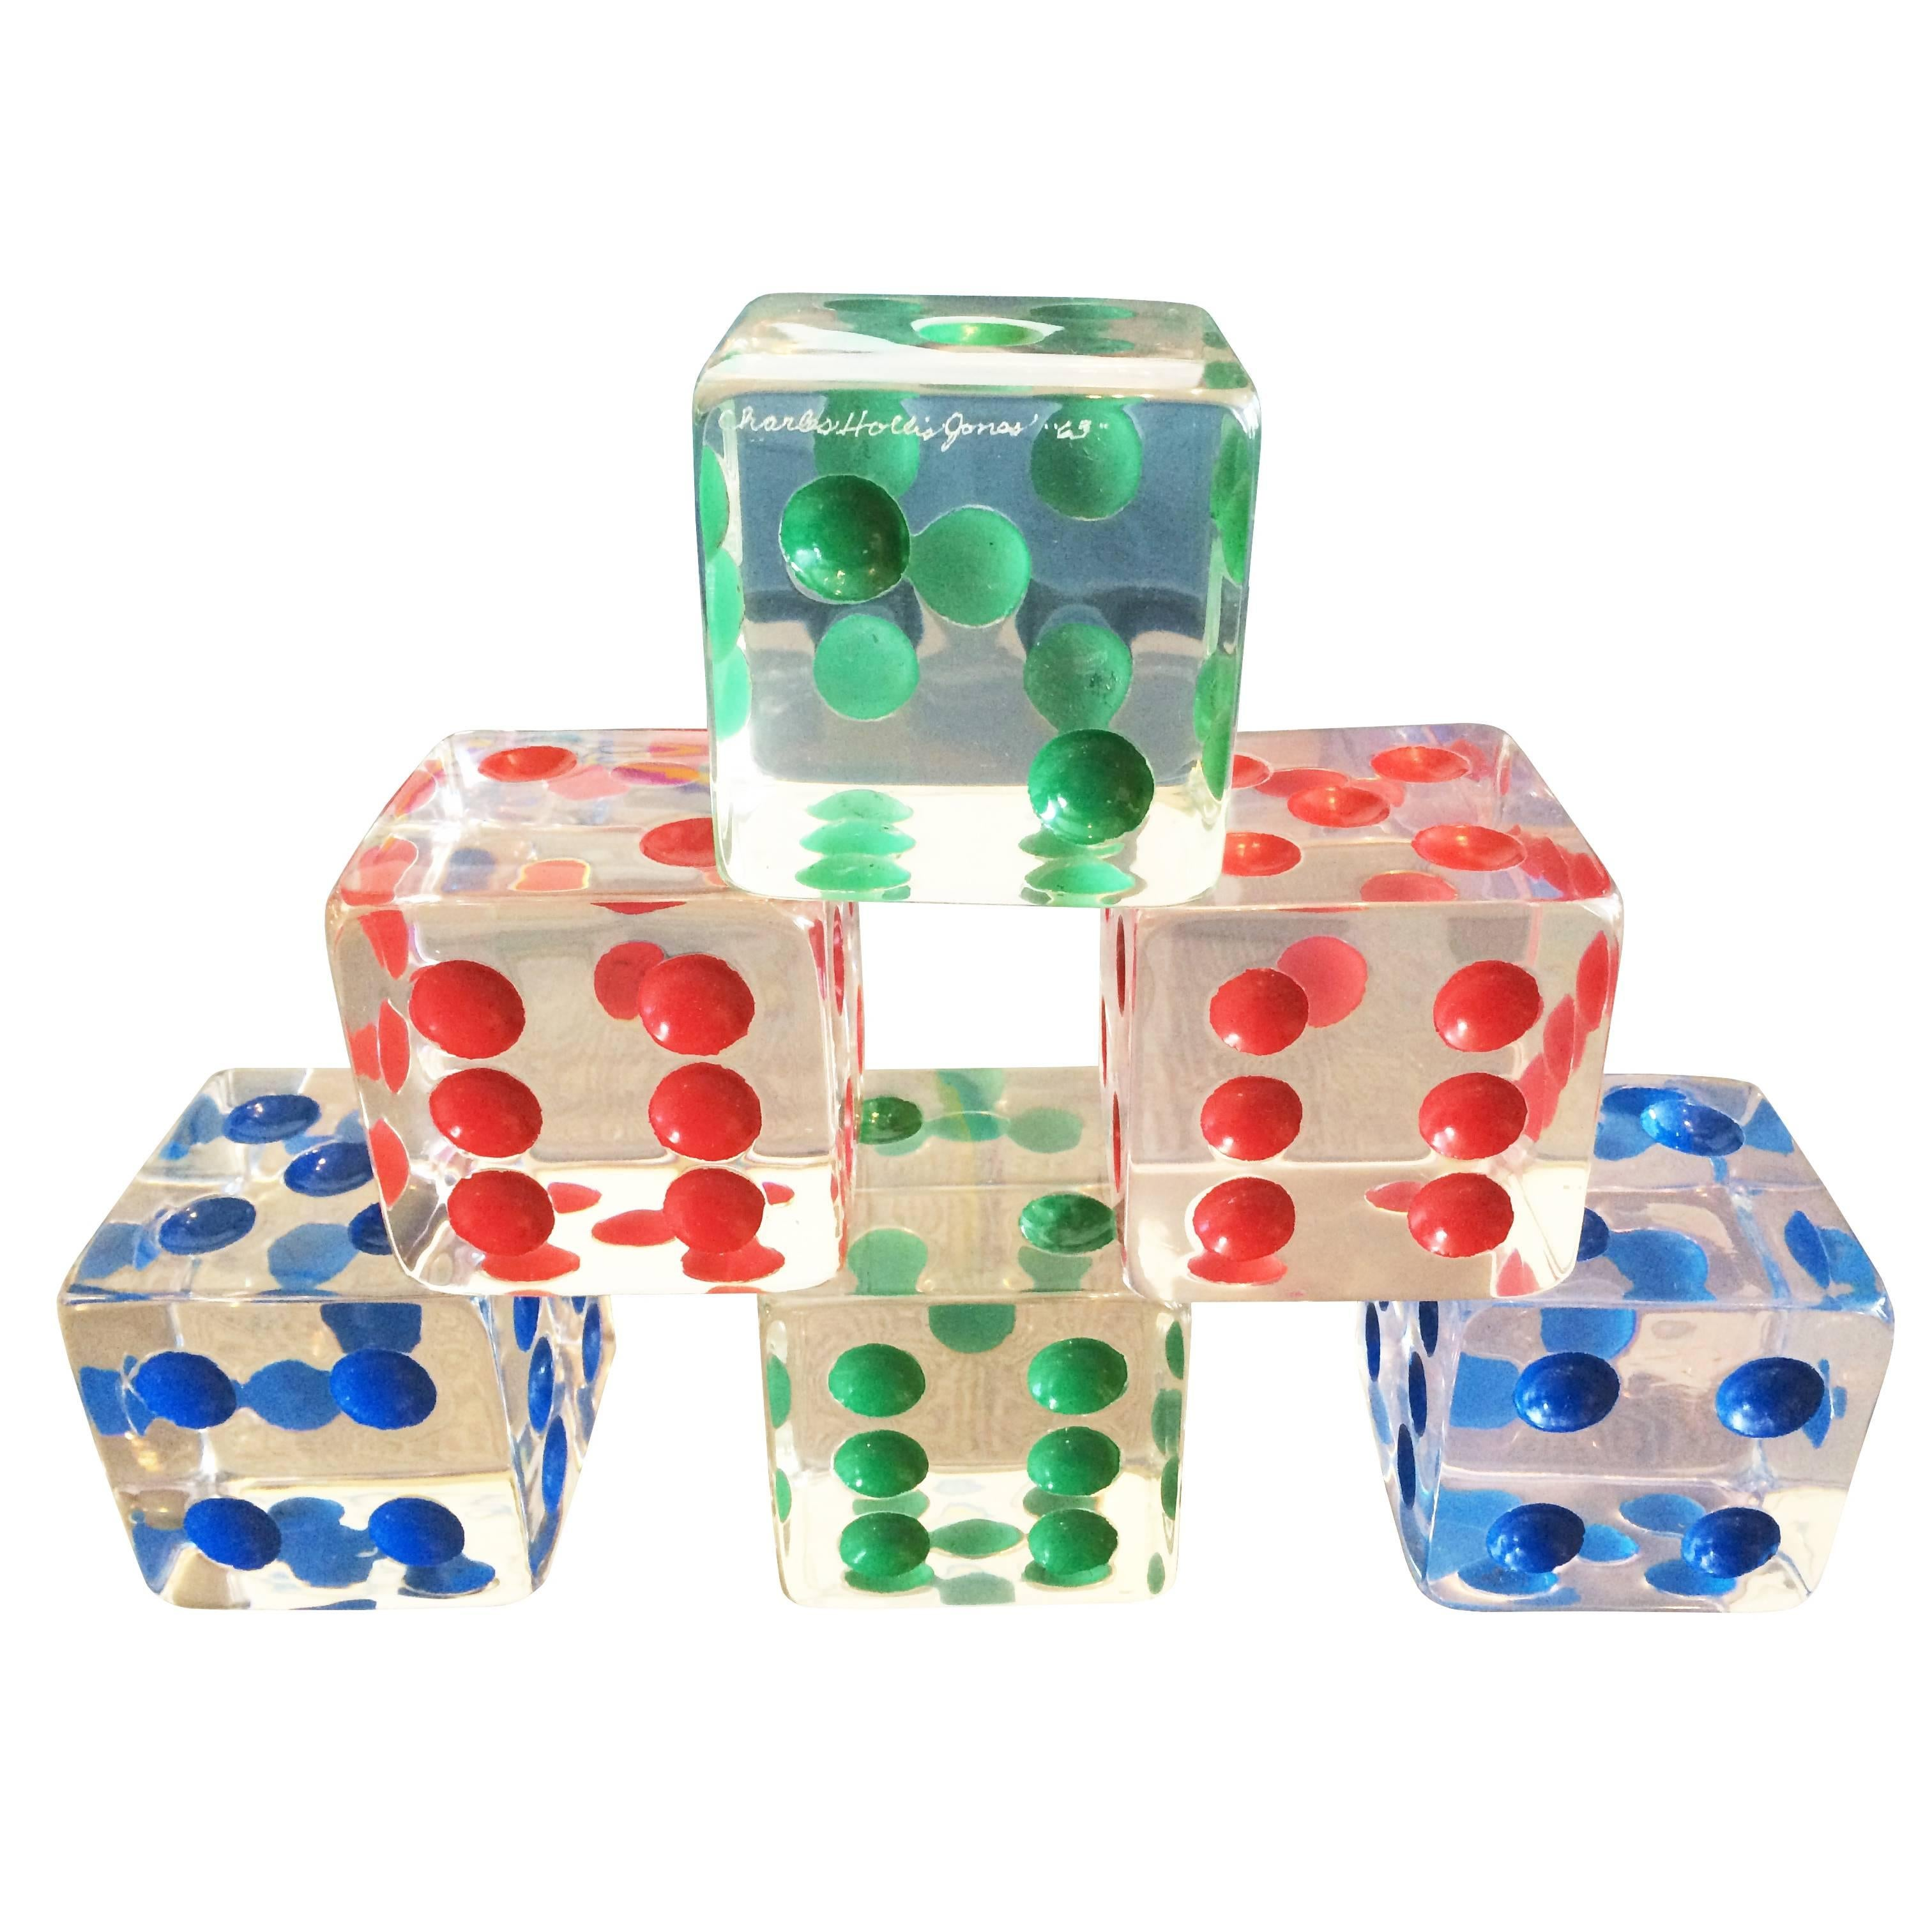 Oversized Dice Sculpture in Lucite by Charles Hollis Jones, Signed and Dated